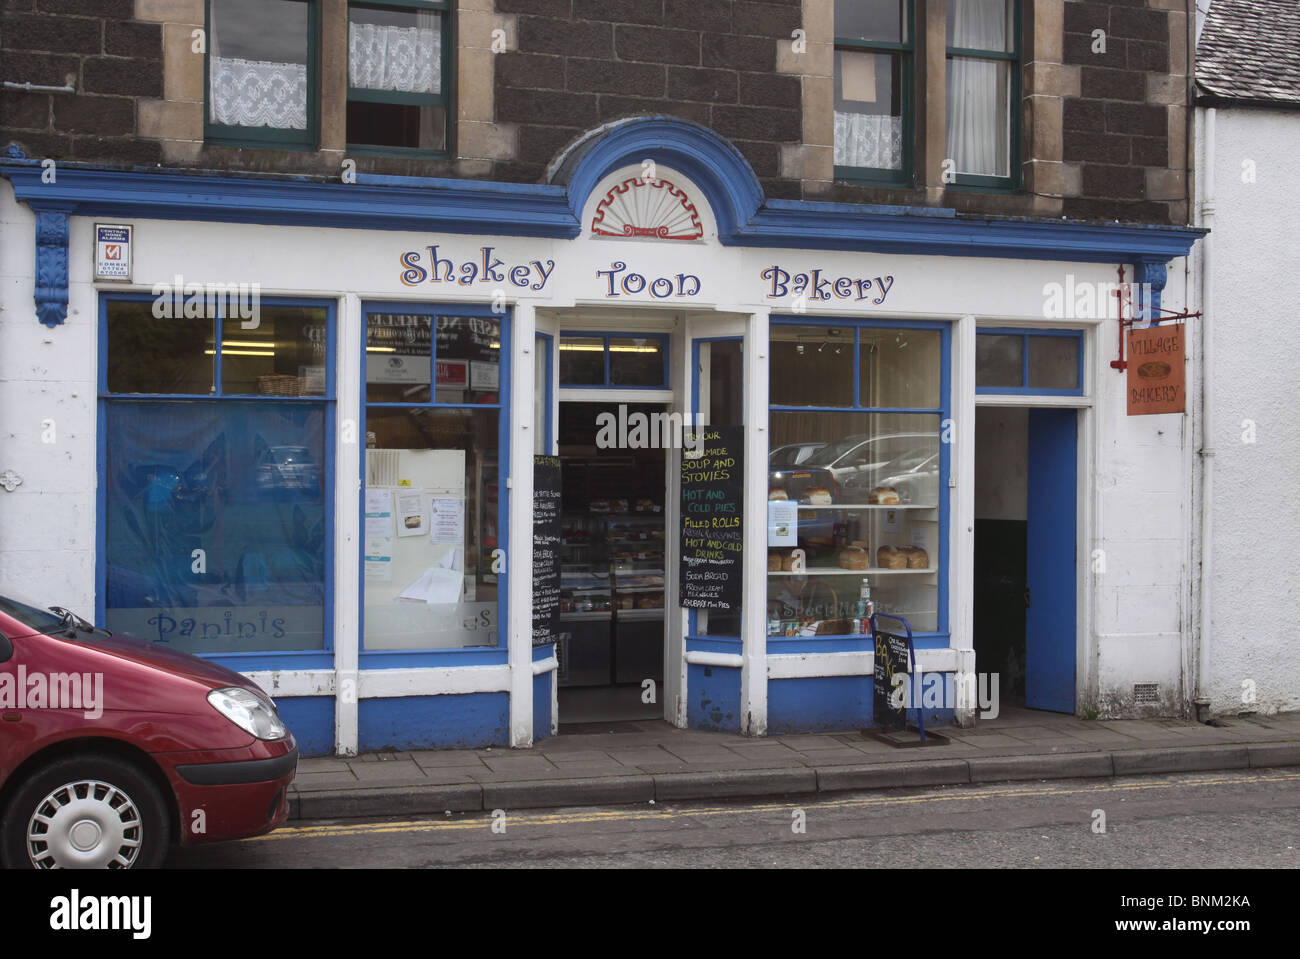 exterior of Shakey Toon Bakery Comrie Scotland  July 2010 - Stock Image